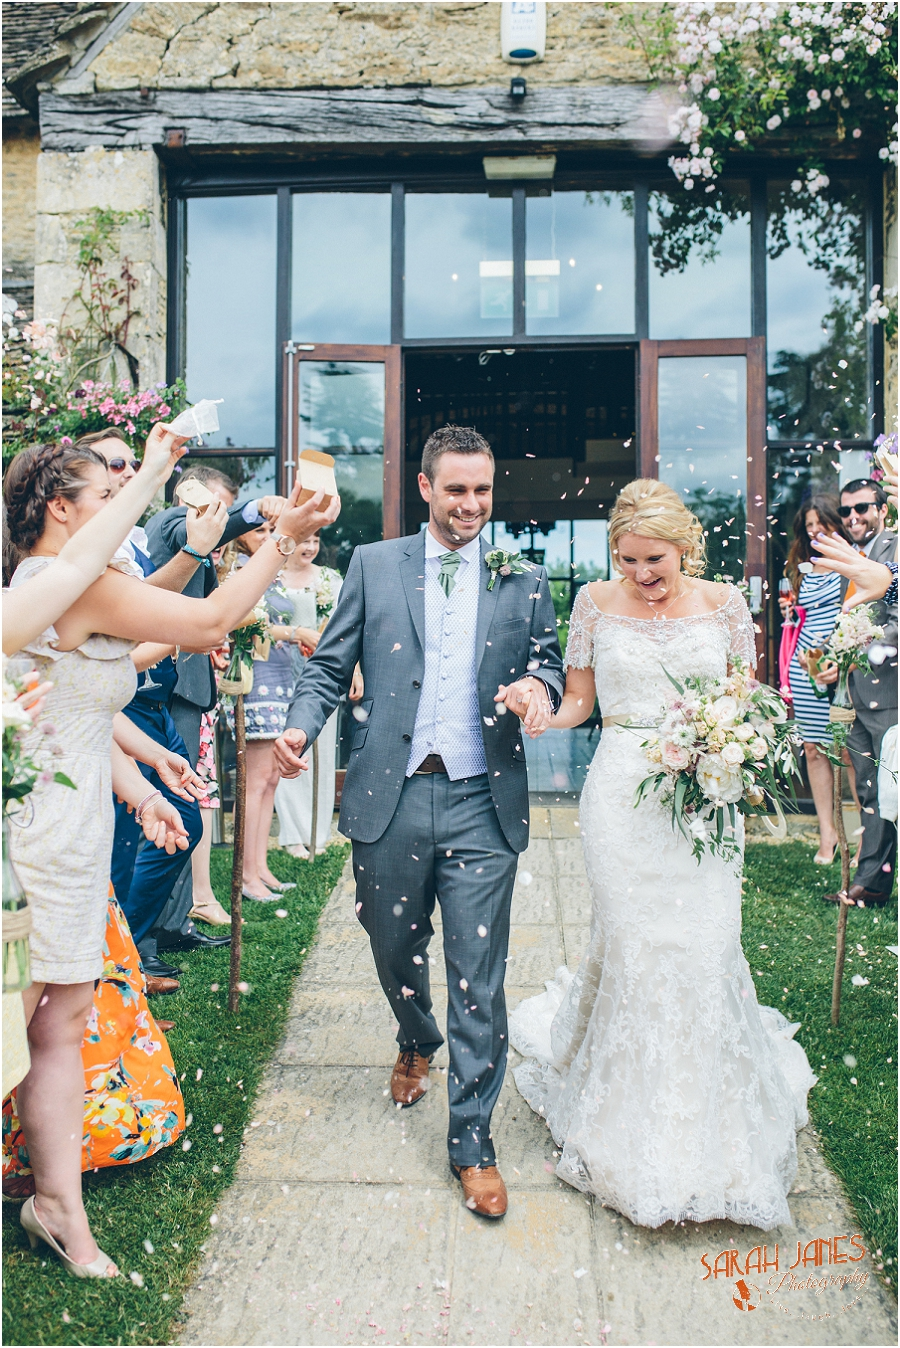 Wedding photography at the Great Tythe Barn, Tetbury, Sarah Janes Photography, Cotswolds wedding photography_0032.jpg